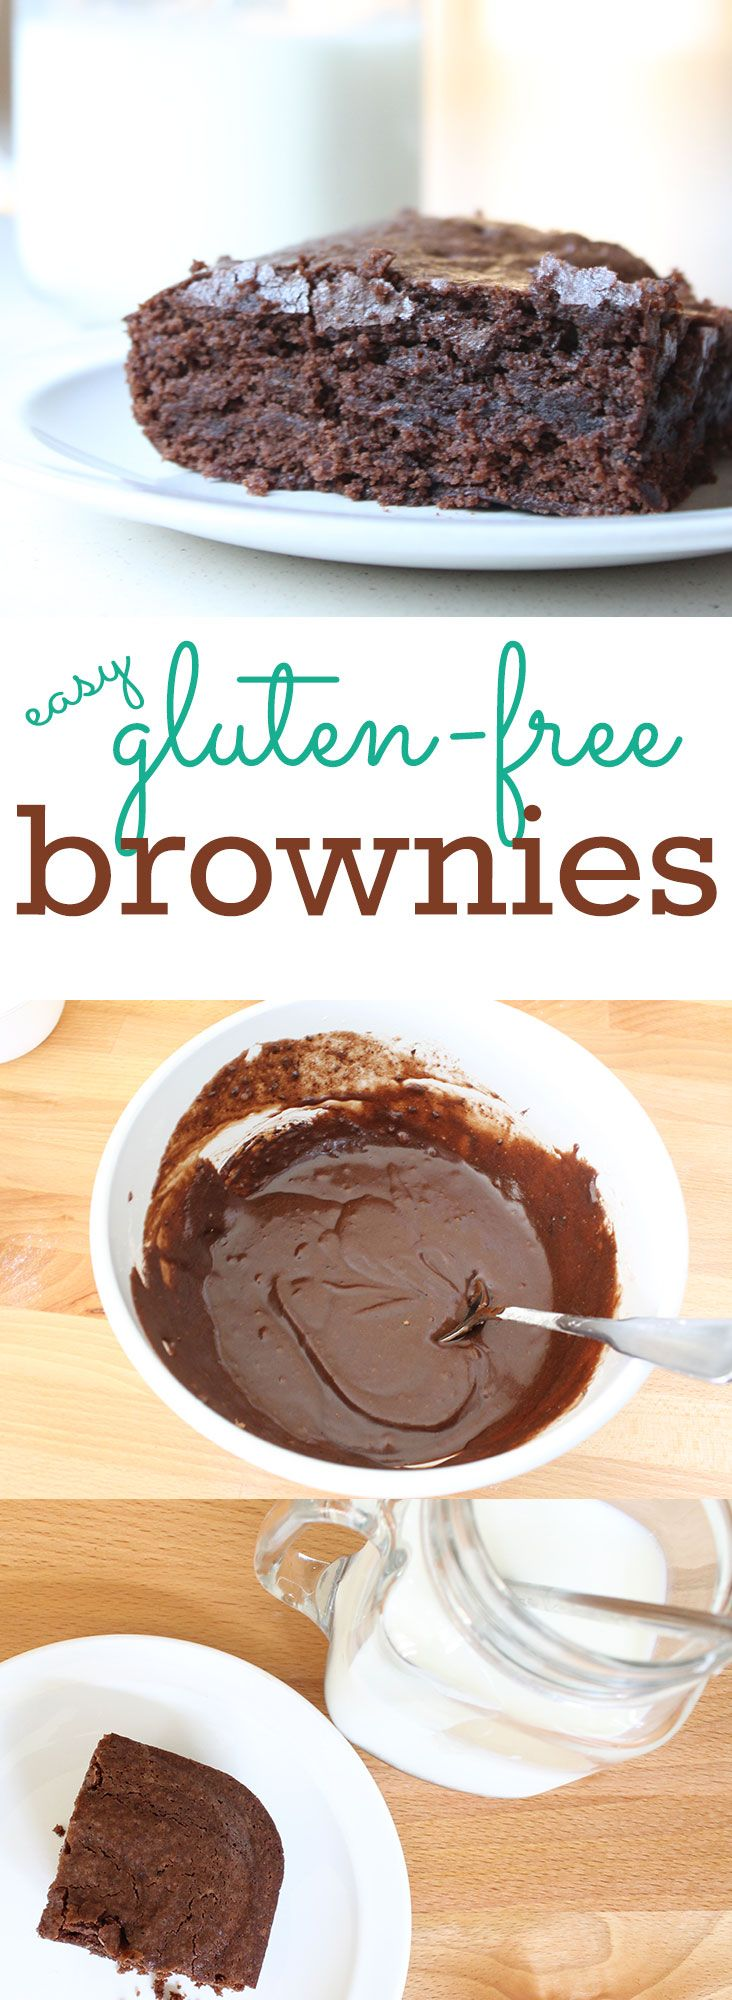 This homemade gluten free brownie recipe is so easy and frugal and never fails. The ingredients are all staples and it takes just a couple minutes to whip them up. (Egg free and nut free too.)